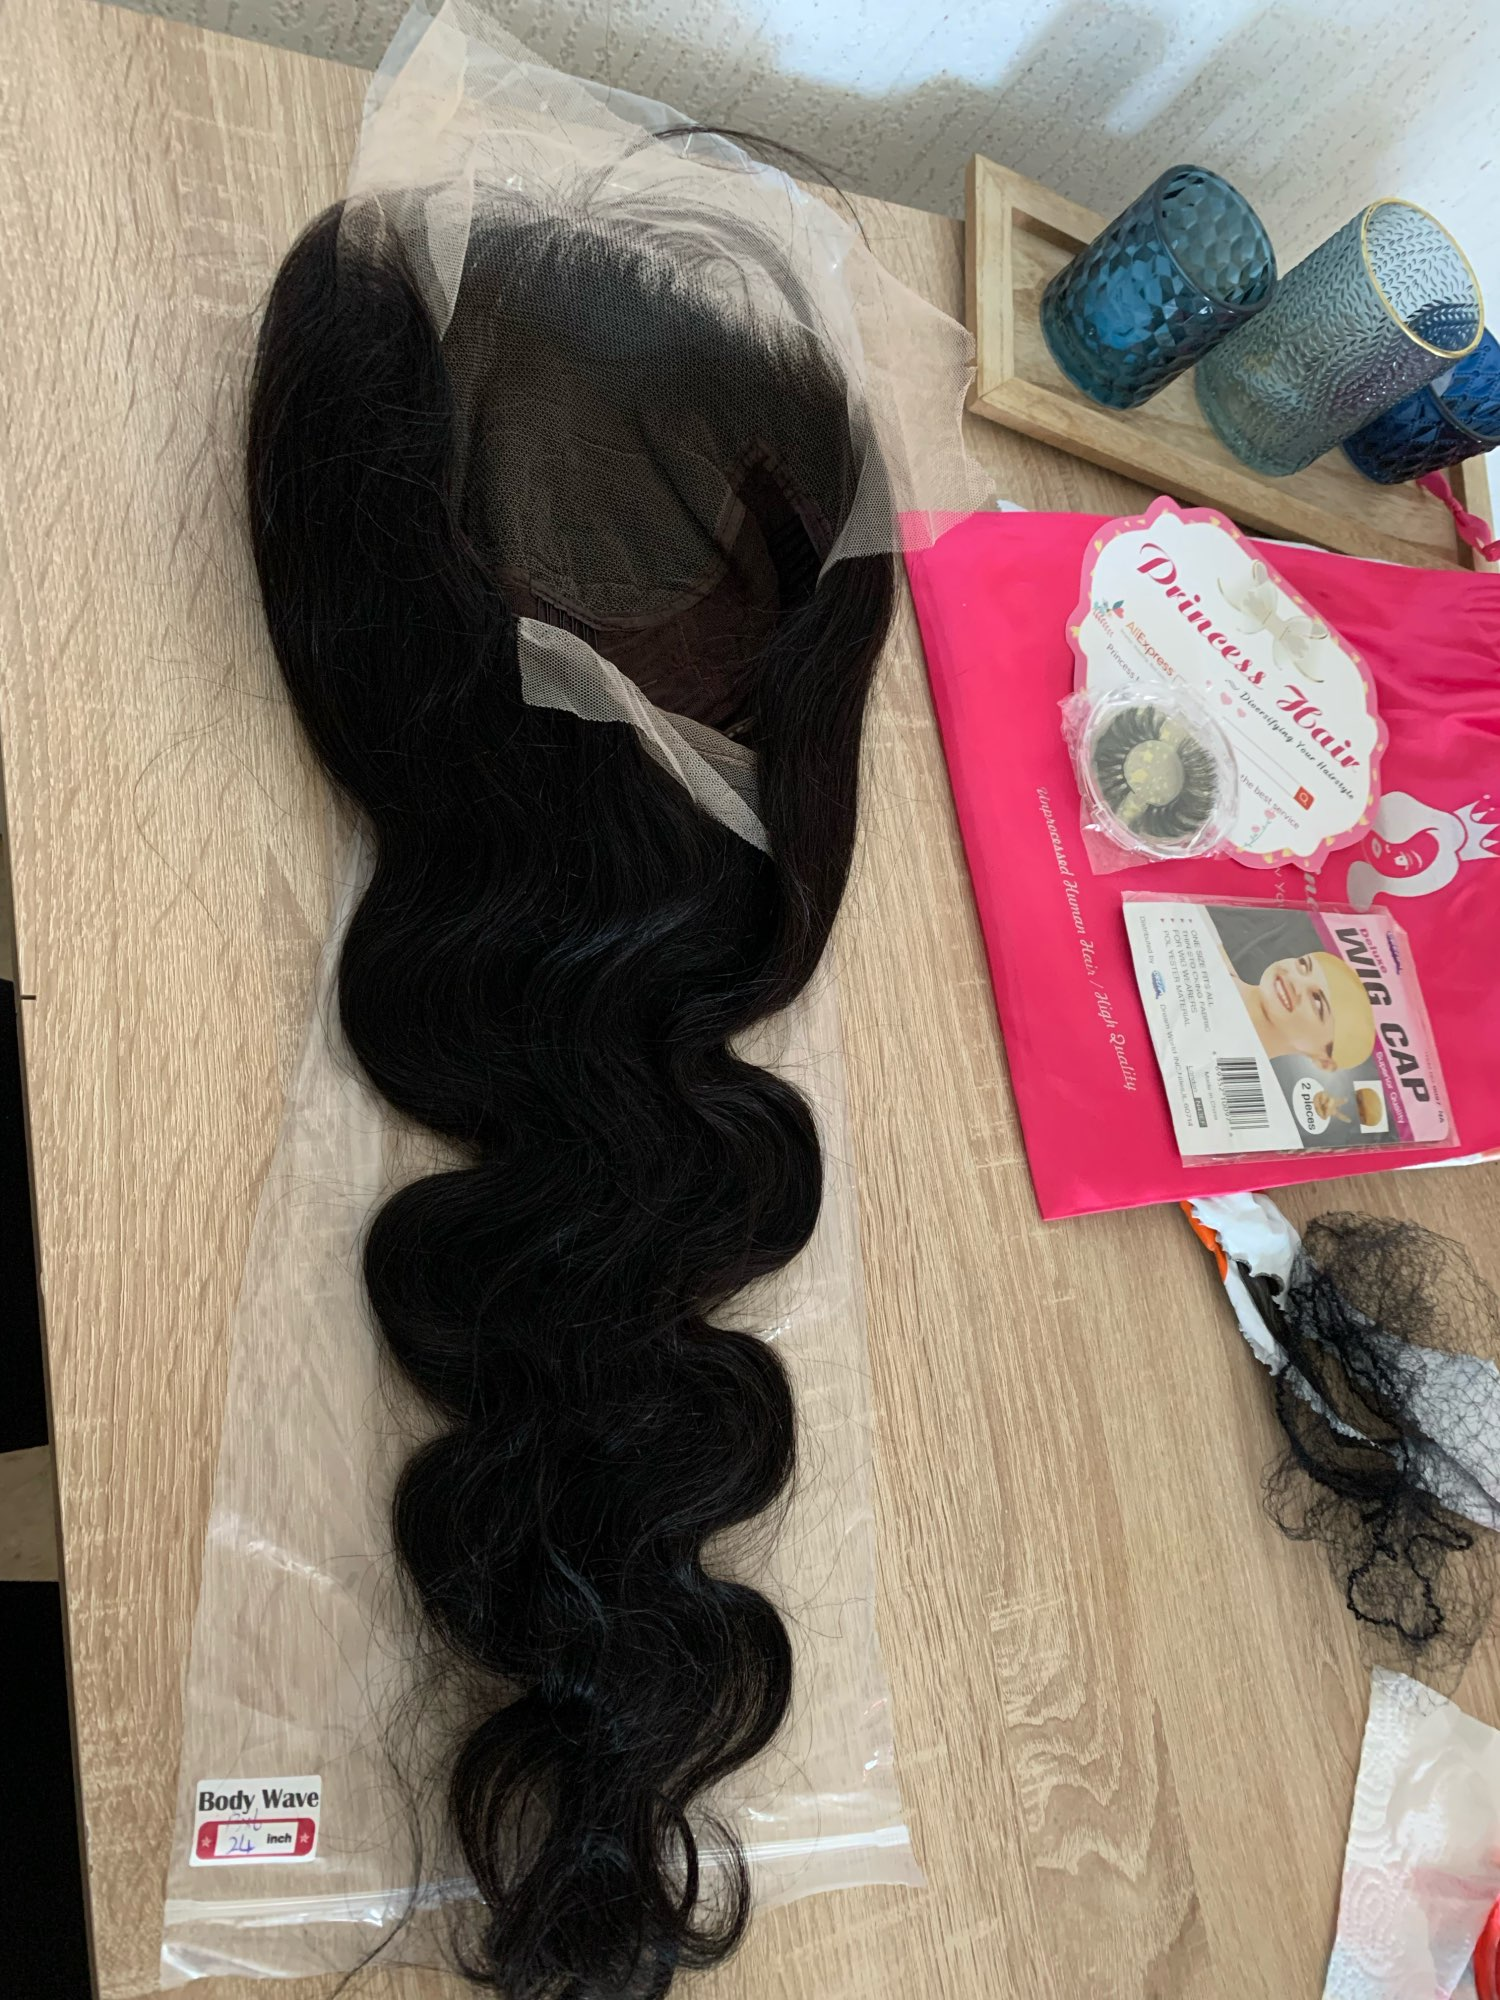 HD Transparent Lace Front Human Hair Wigs PrePlucked 13x6 180% Brazilian Body Wave Lace Frontal Wig With Baby Hair Remy Princess|Human Hair Lace Wigs|   - AliExpress